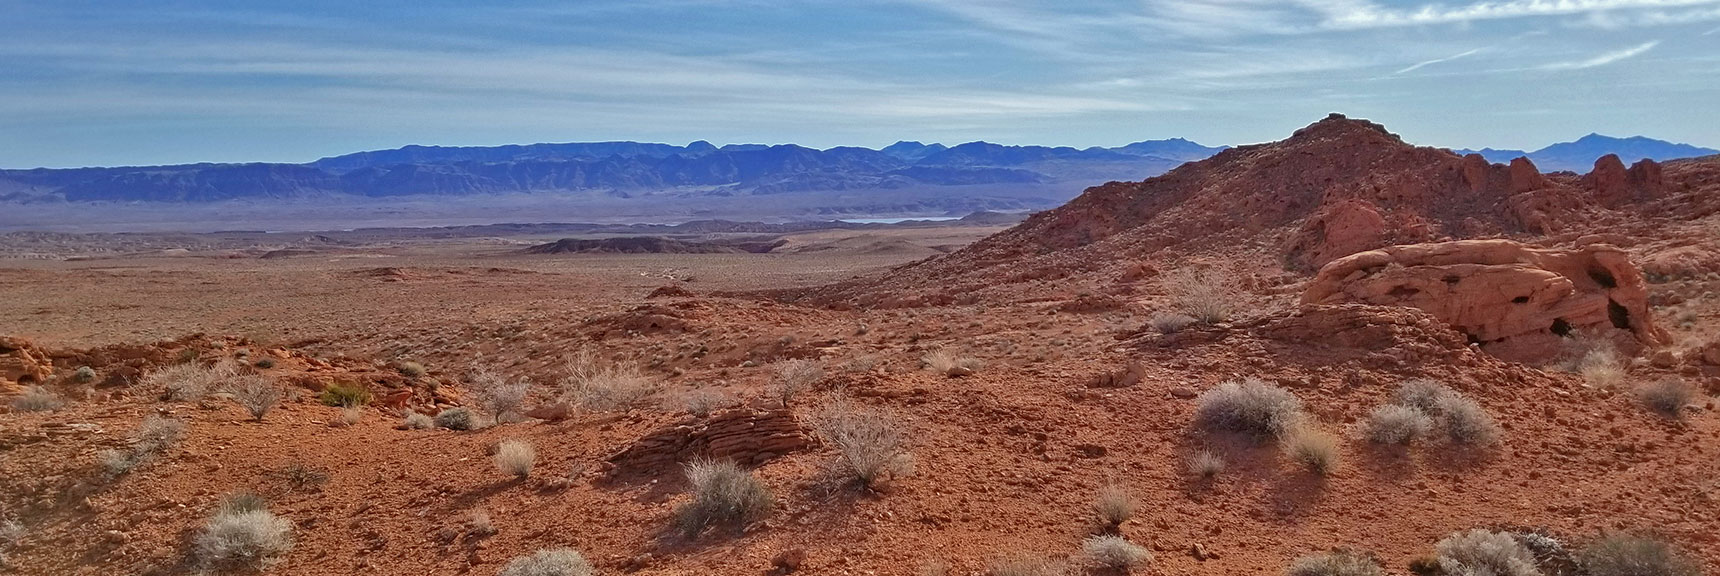 View Toward the Overton Arm of Lake Mead from the Red Rock Hills South of Elephant Loop in Valley of Fire State Park, Nevada